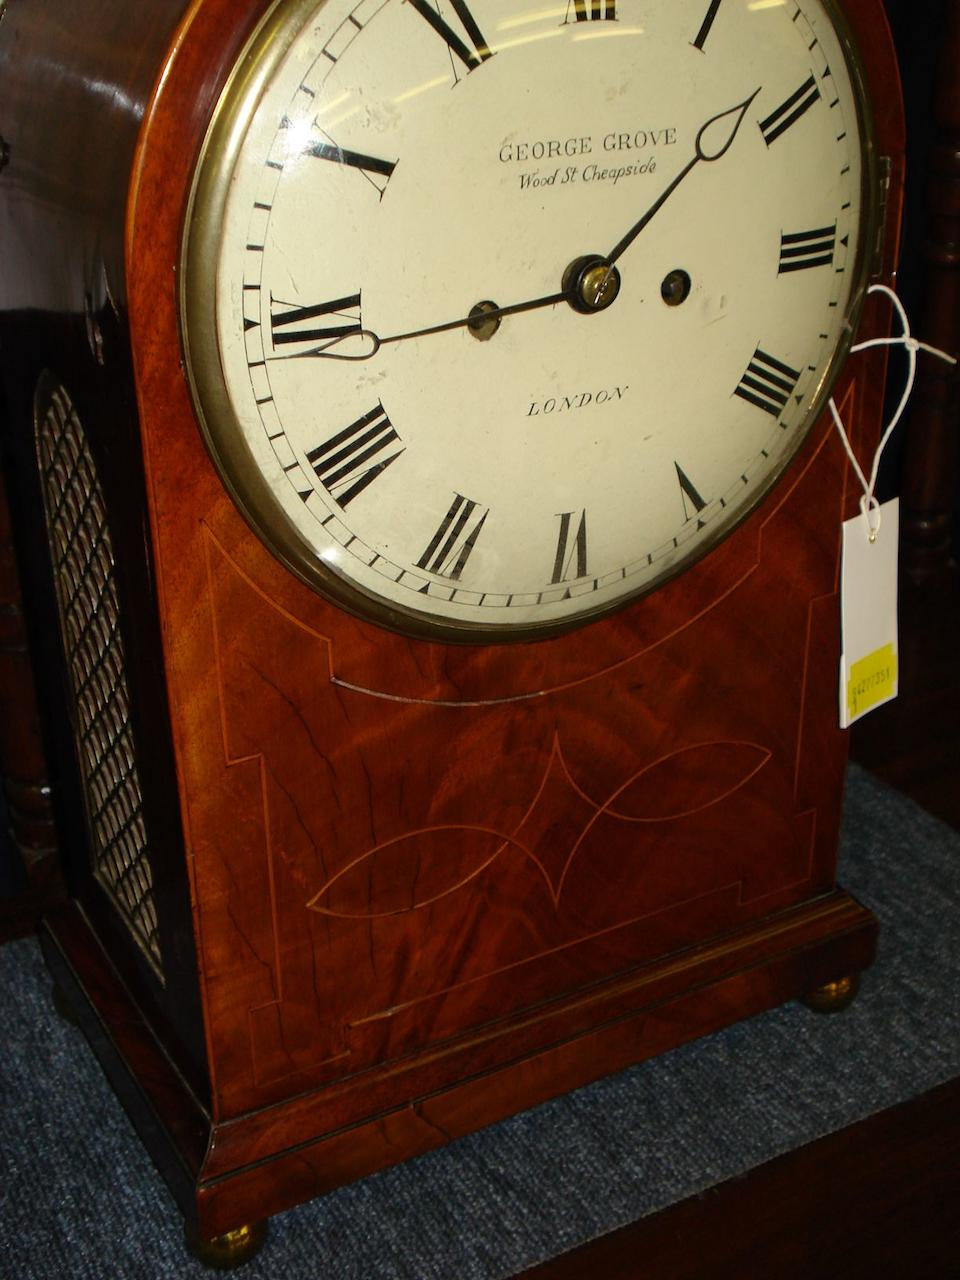 A 19th Century mahogany cased bracket clock George Grove, Wood Street, Cheapside, London